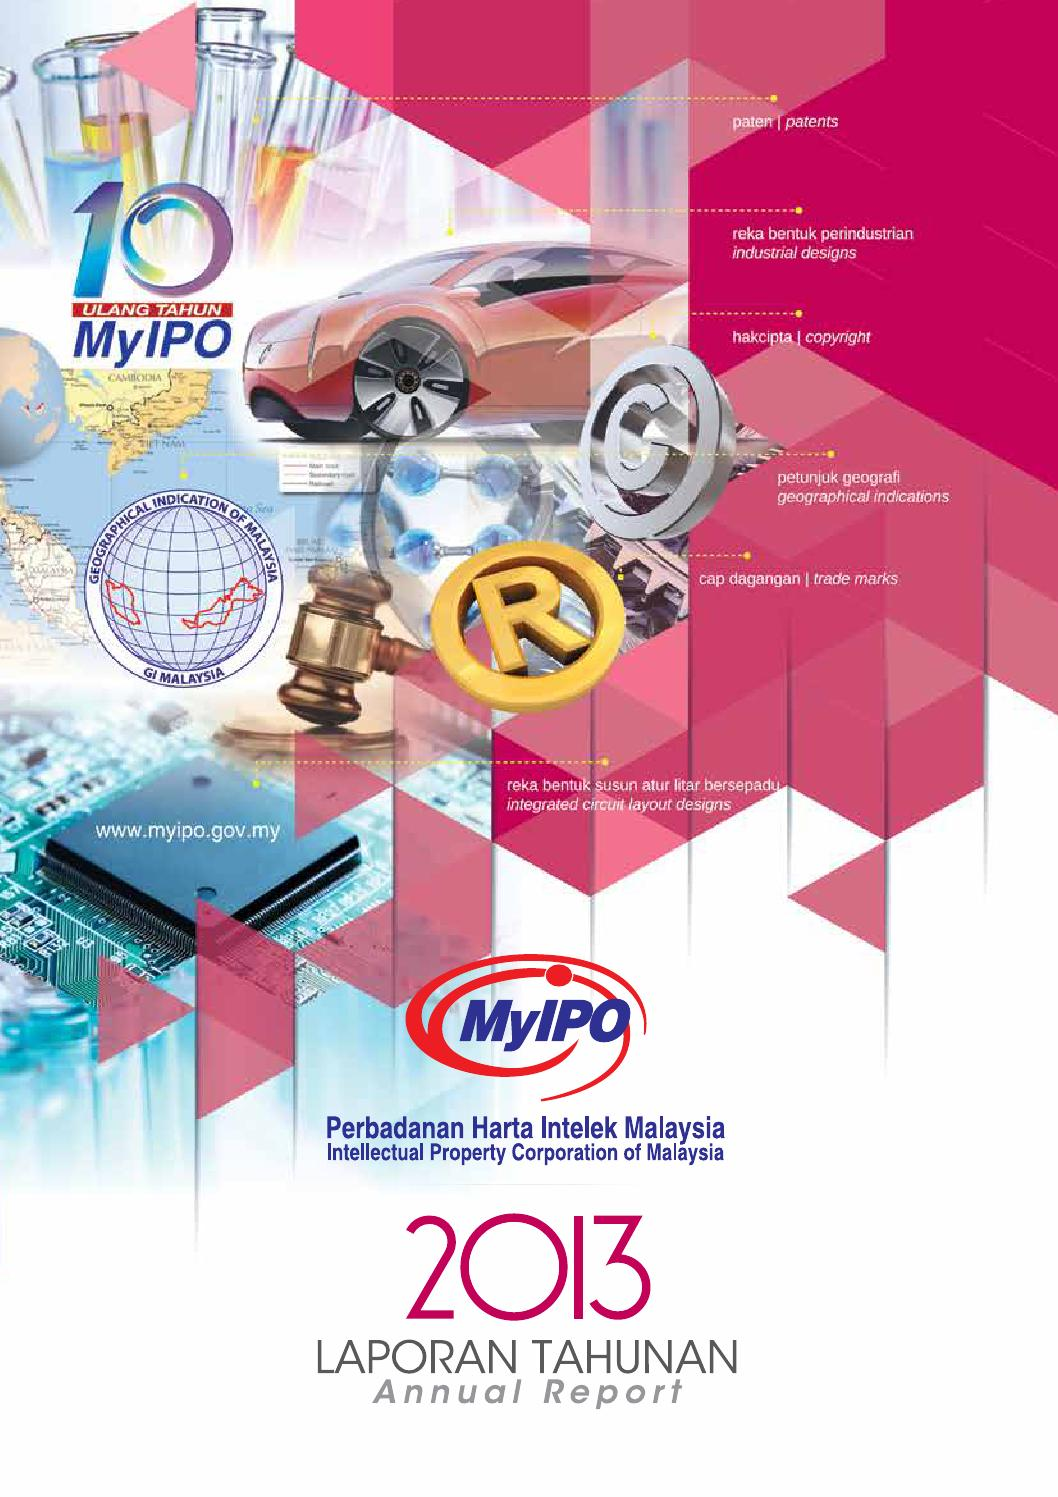 Myipo Annual Report 2013 By Worldwide Business Issuu